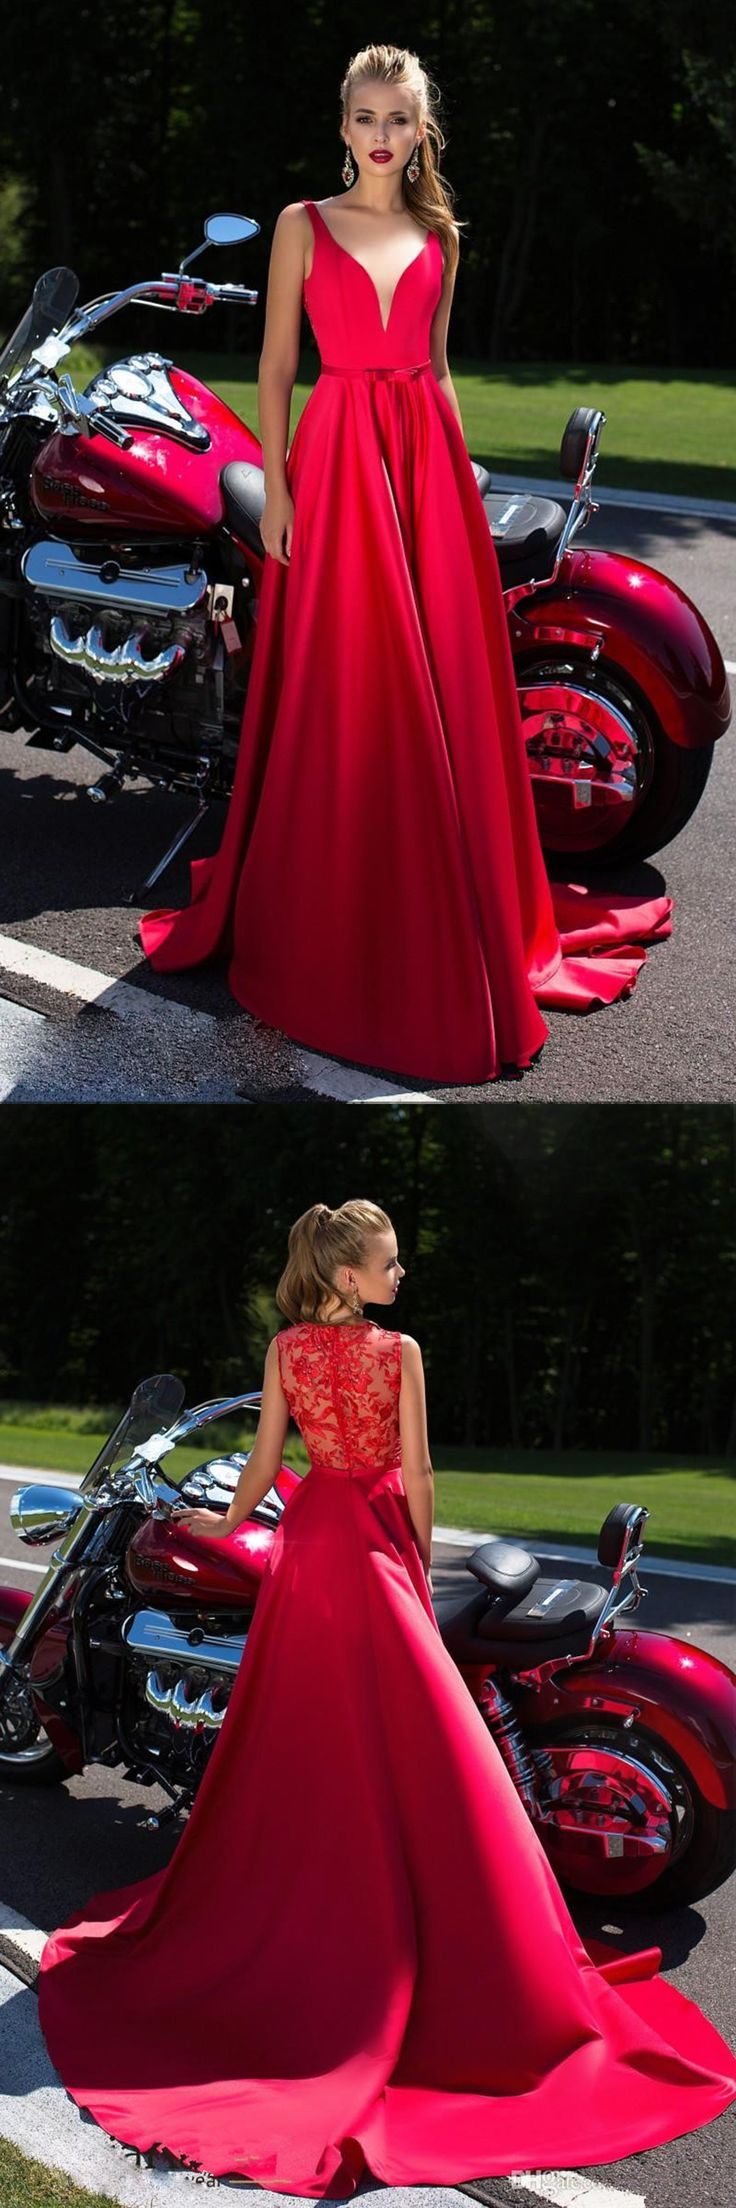 Red see through back long V neck A-line evening dresses. Love the Harley!!